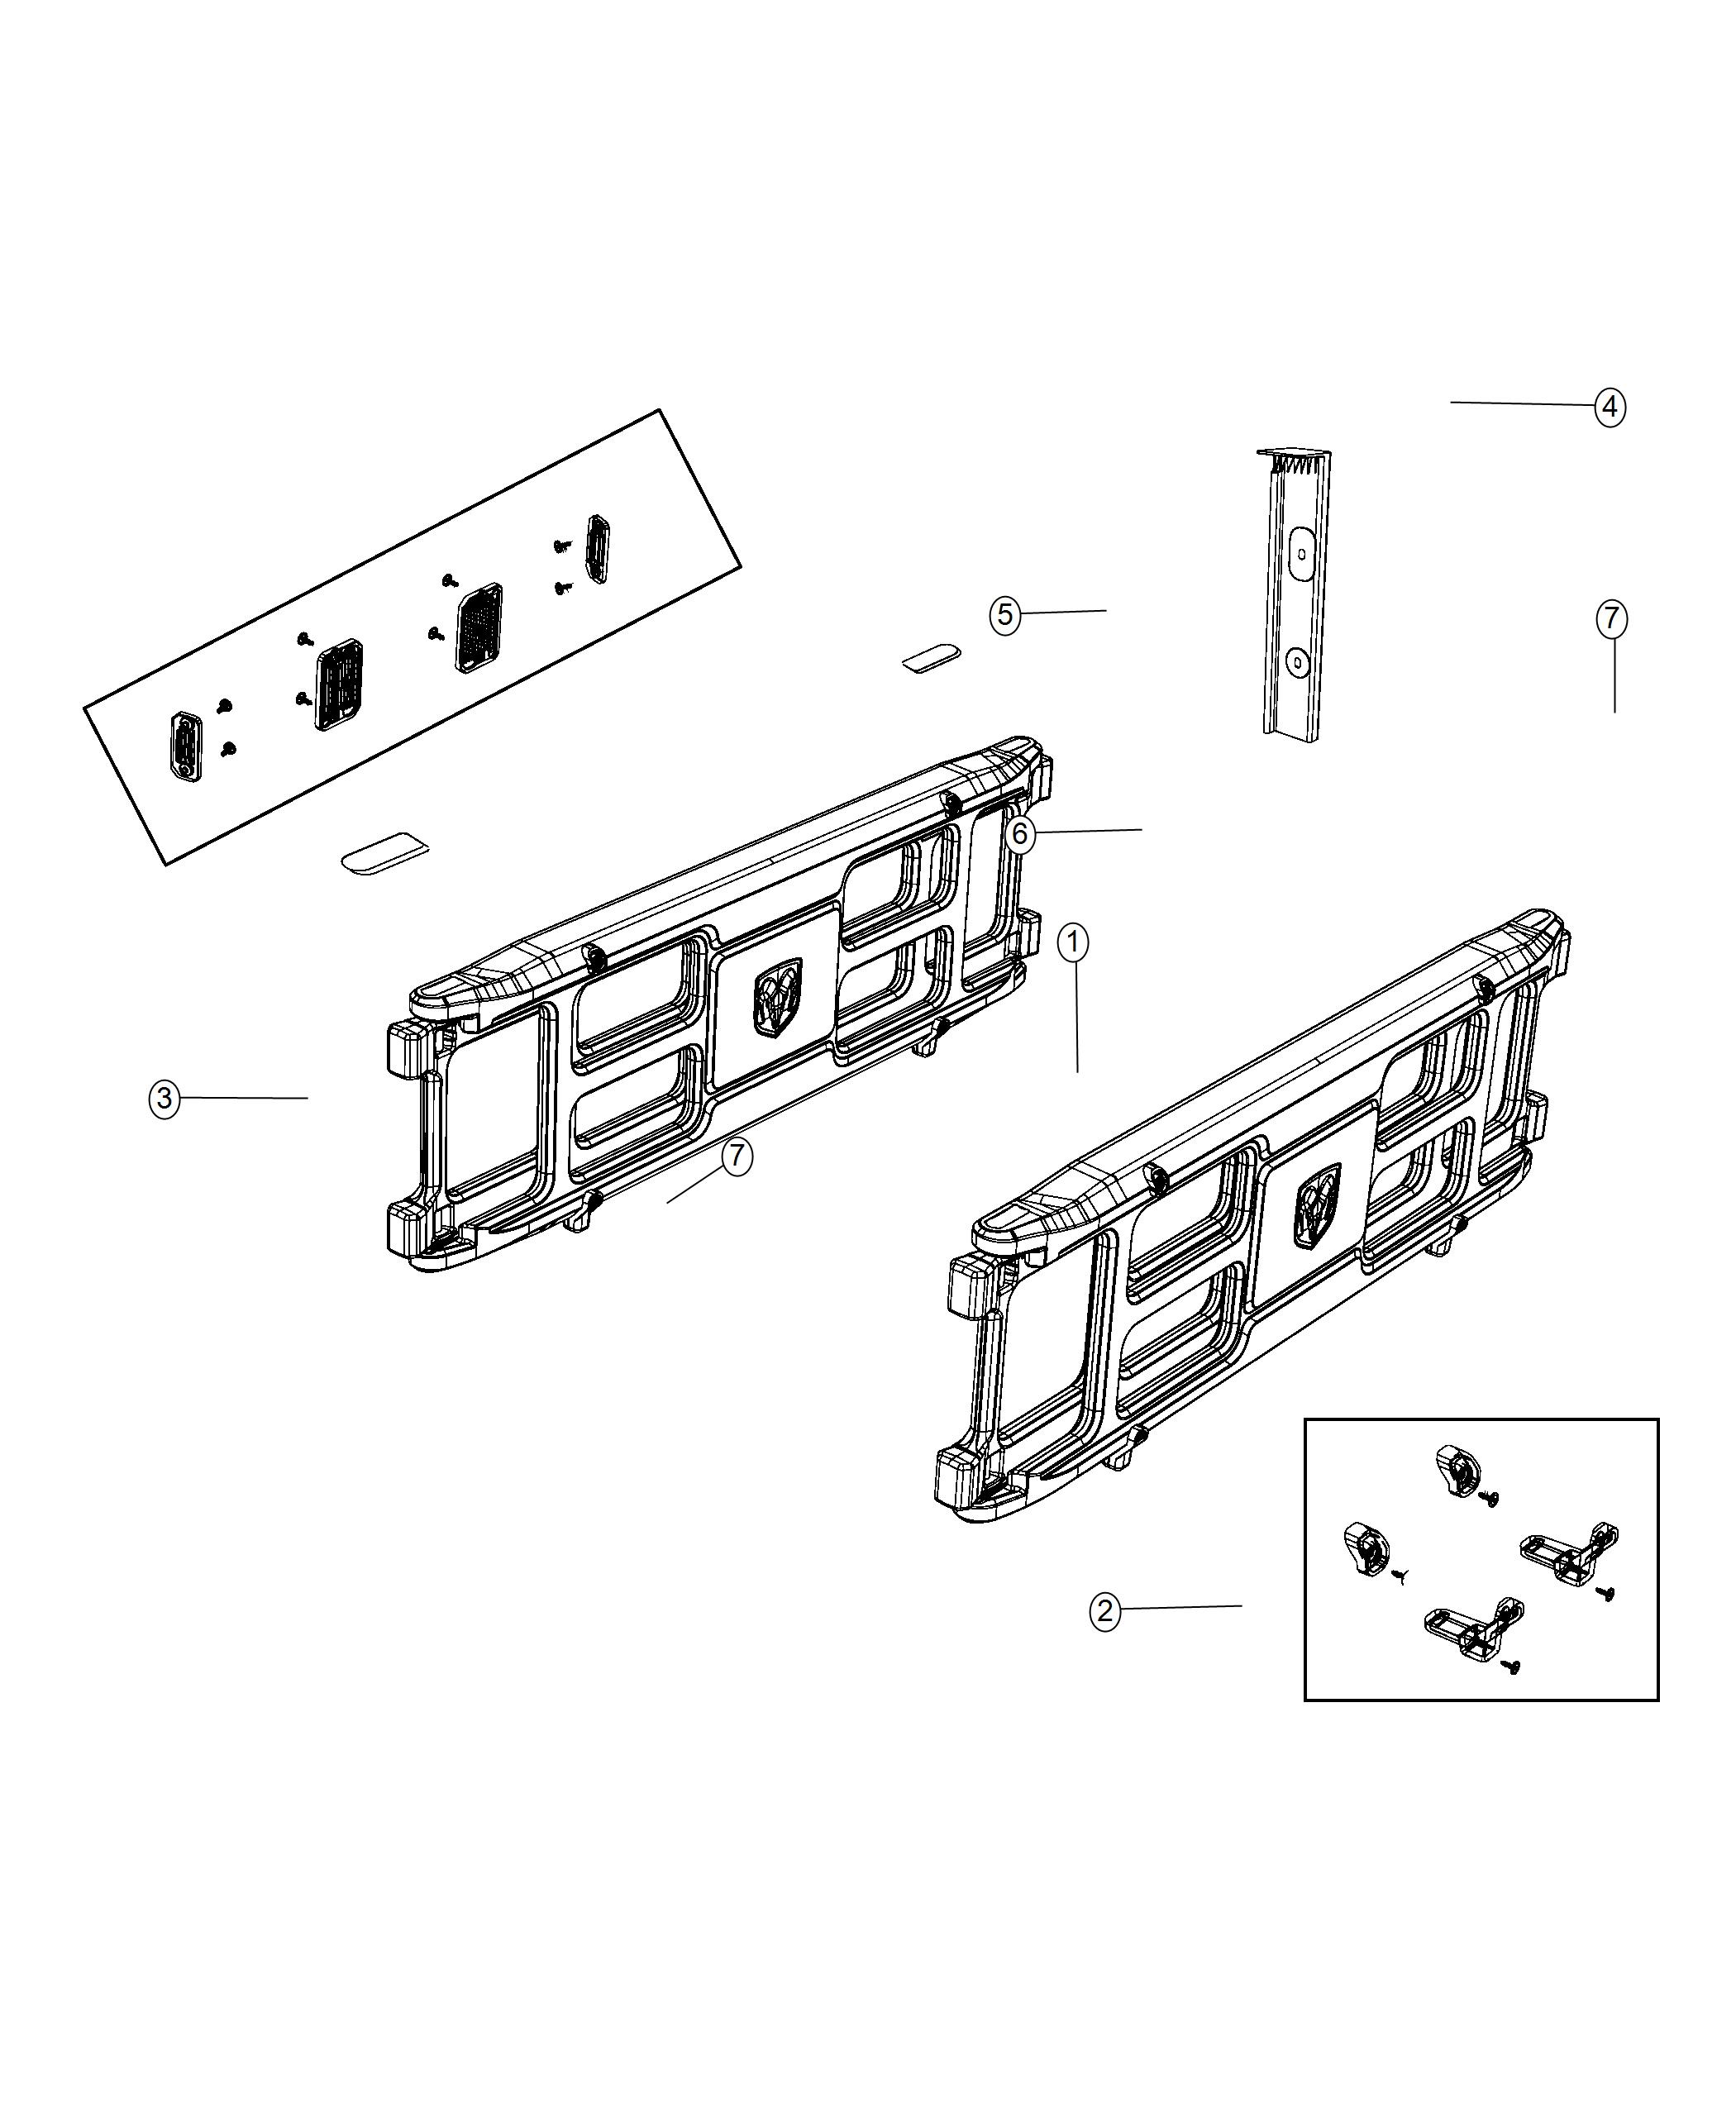 2019 RAM 1500 Divider kit, panel. Cargo bed, pickup box